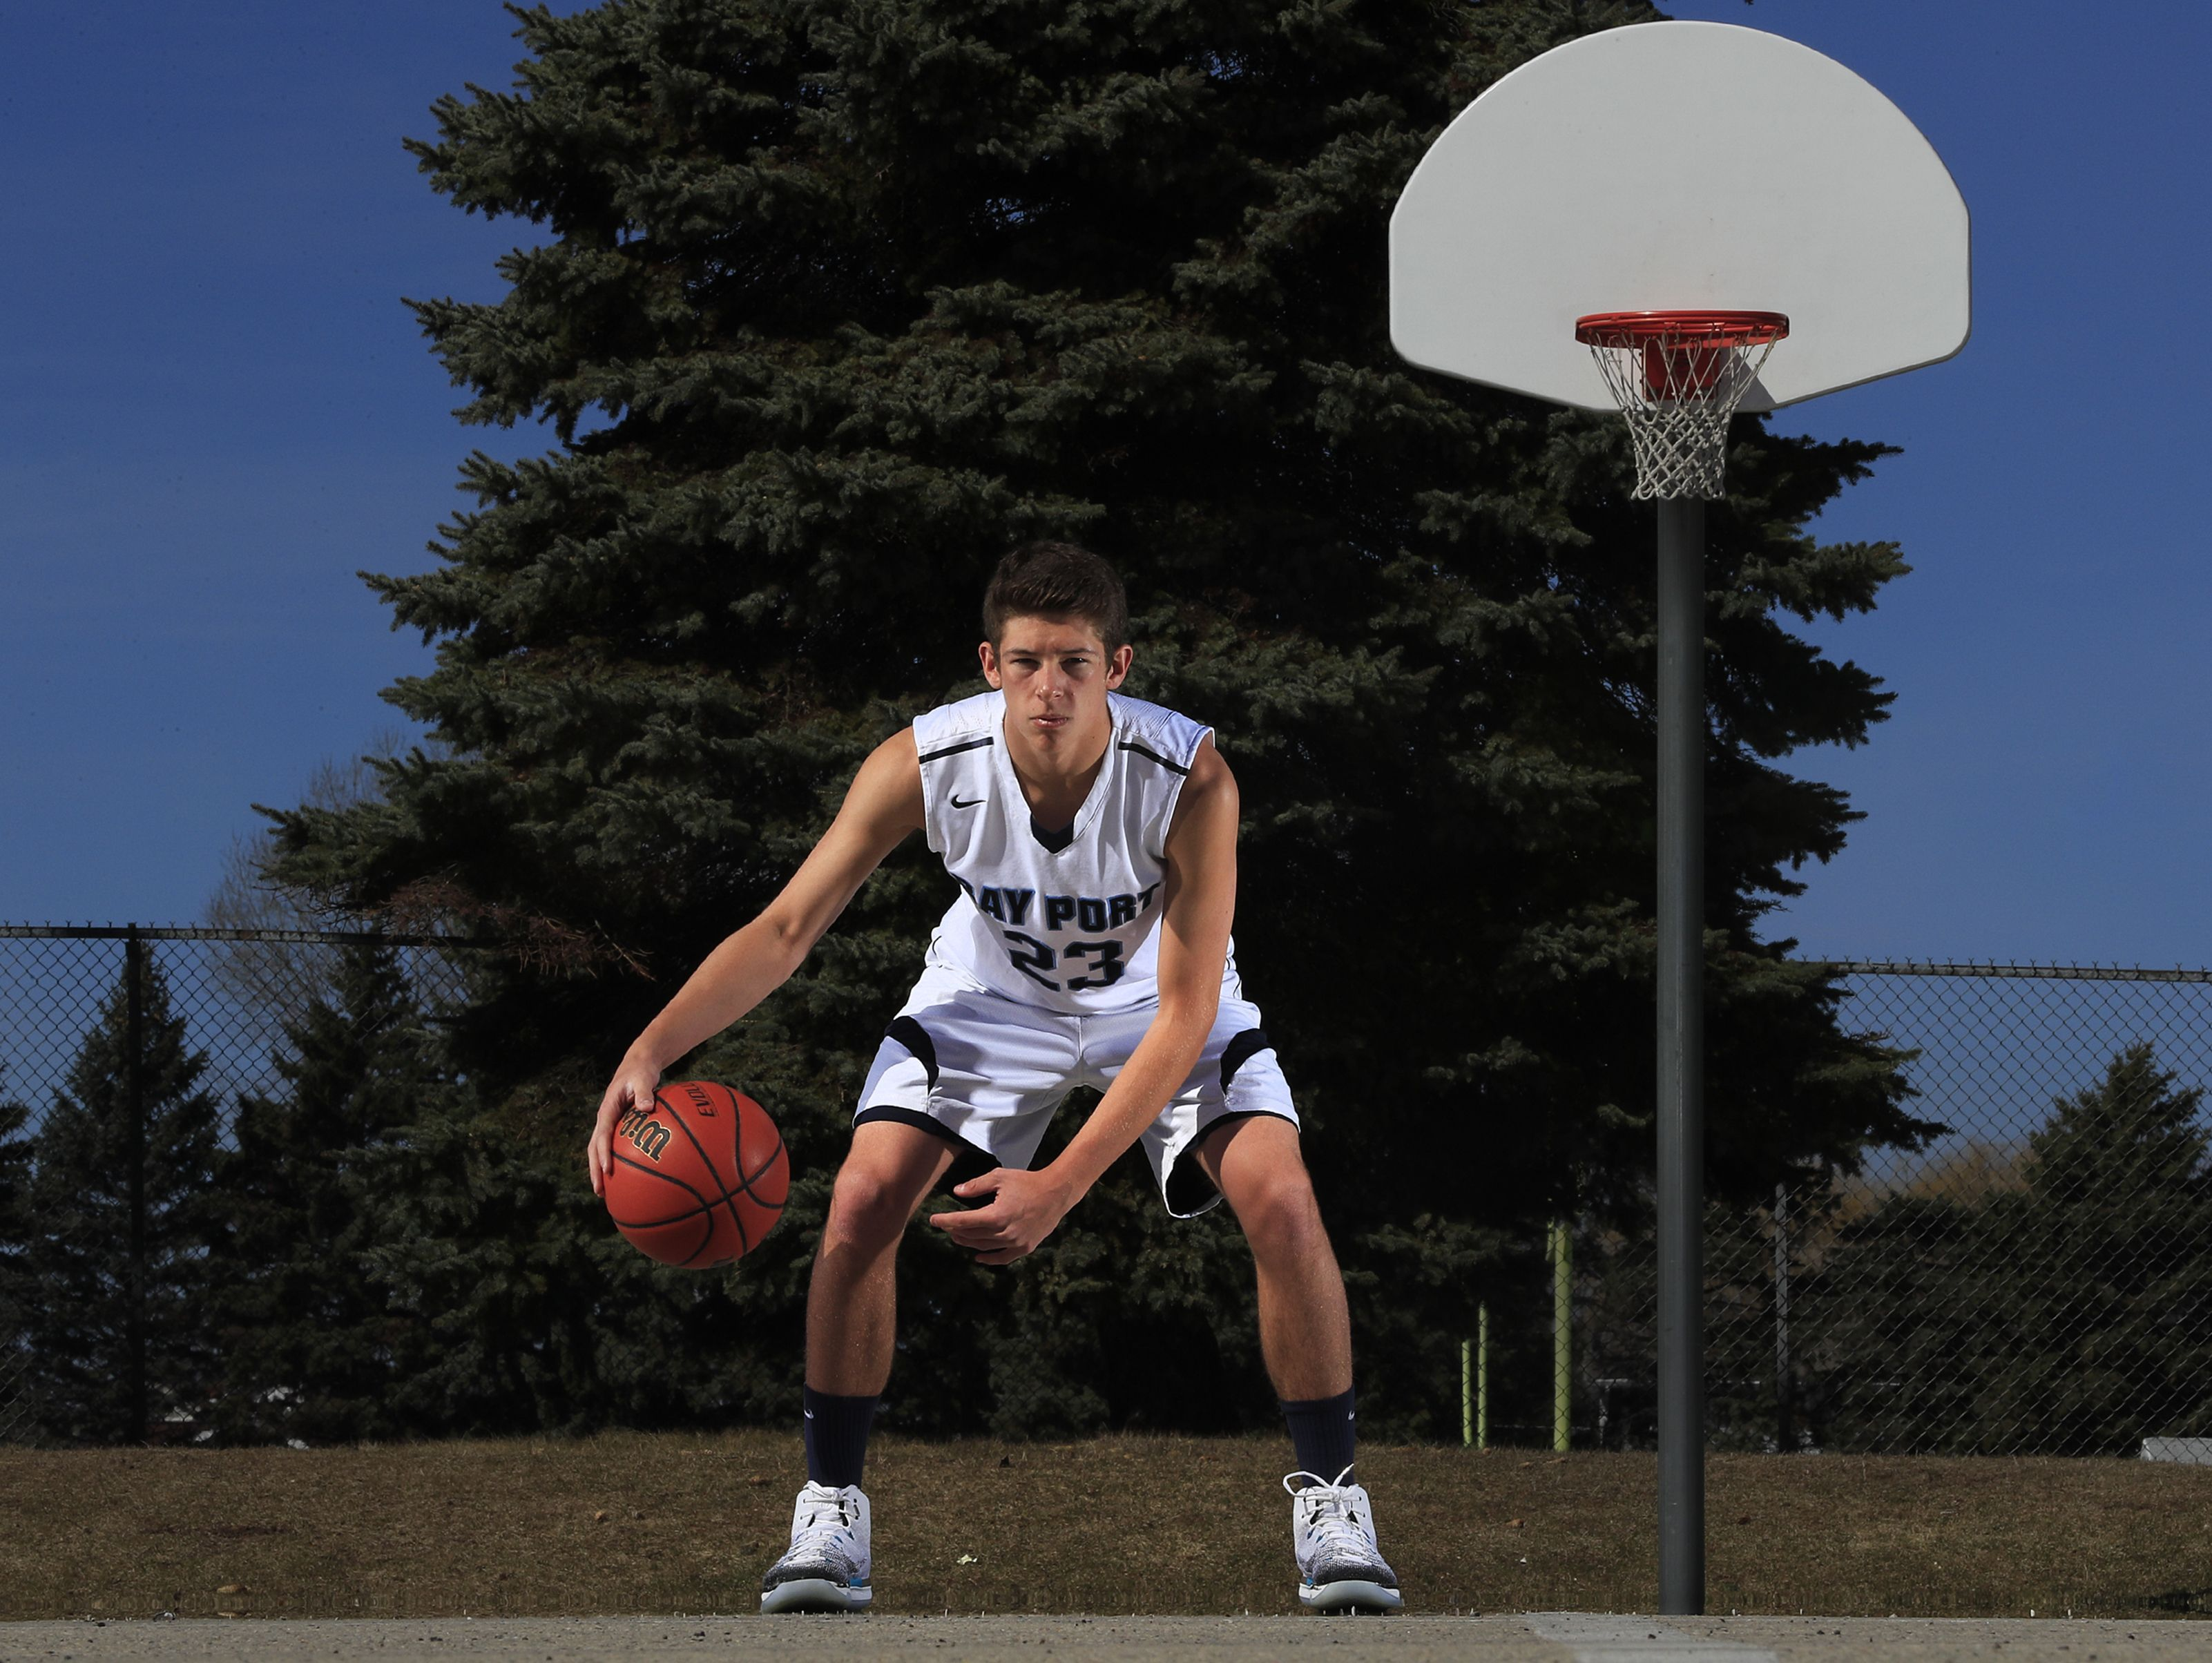 Bay Port's Jordan Nolle is the Press-Gazette boys basketball player of the year. Photographed at Bay View Middle School on Saturday, April 1, 2017, in Howard, Wis.